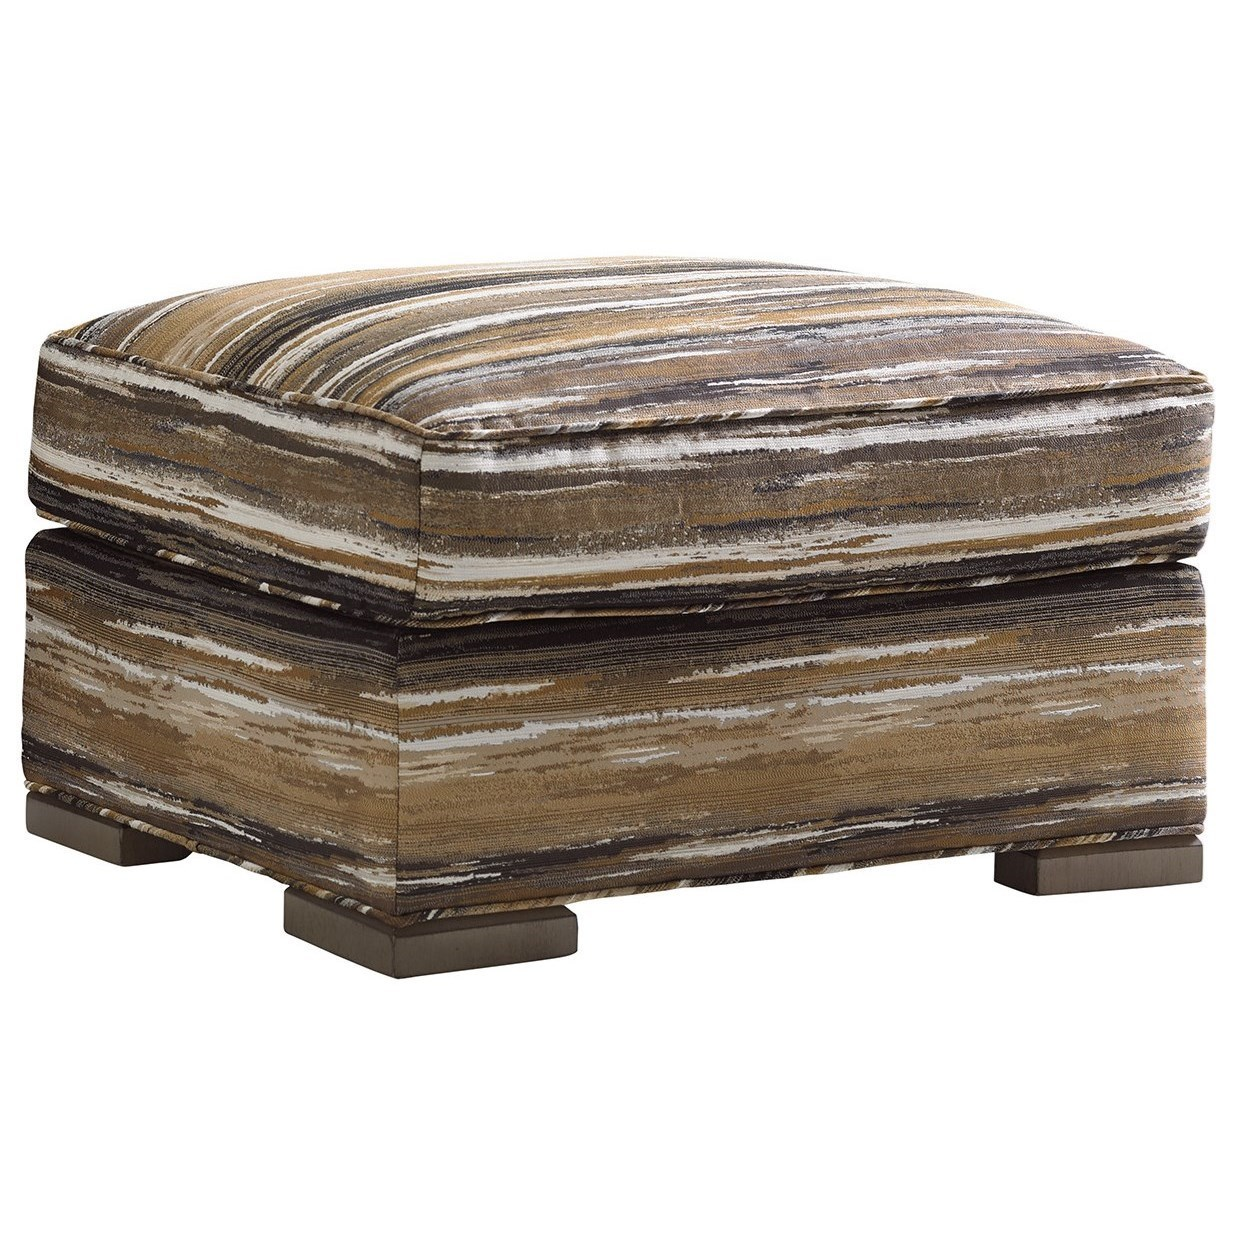 Delshire Ottoman with Wood Block Feet